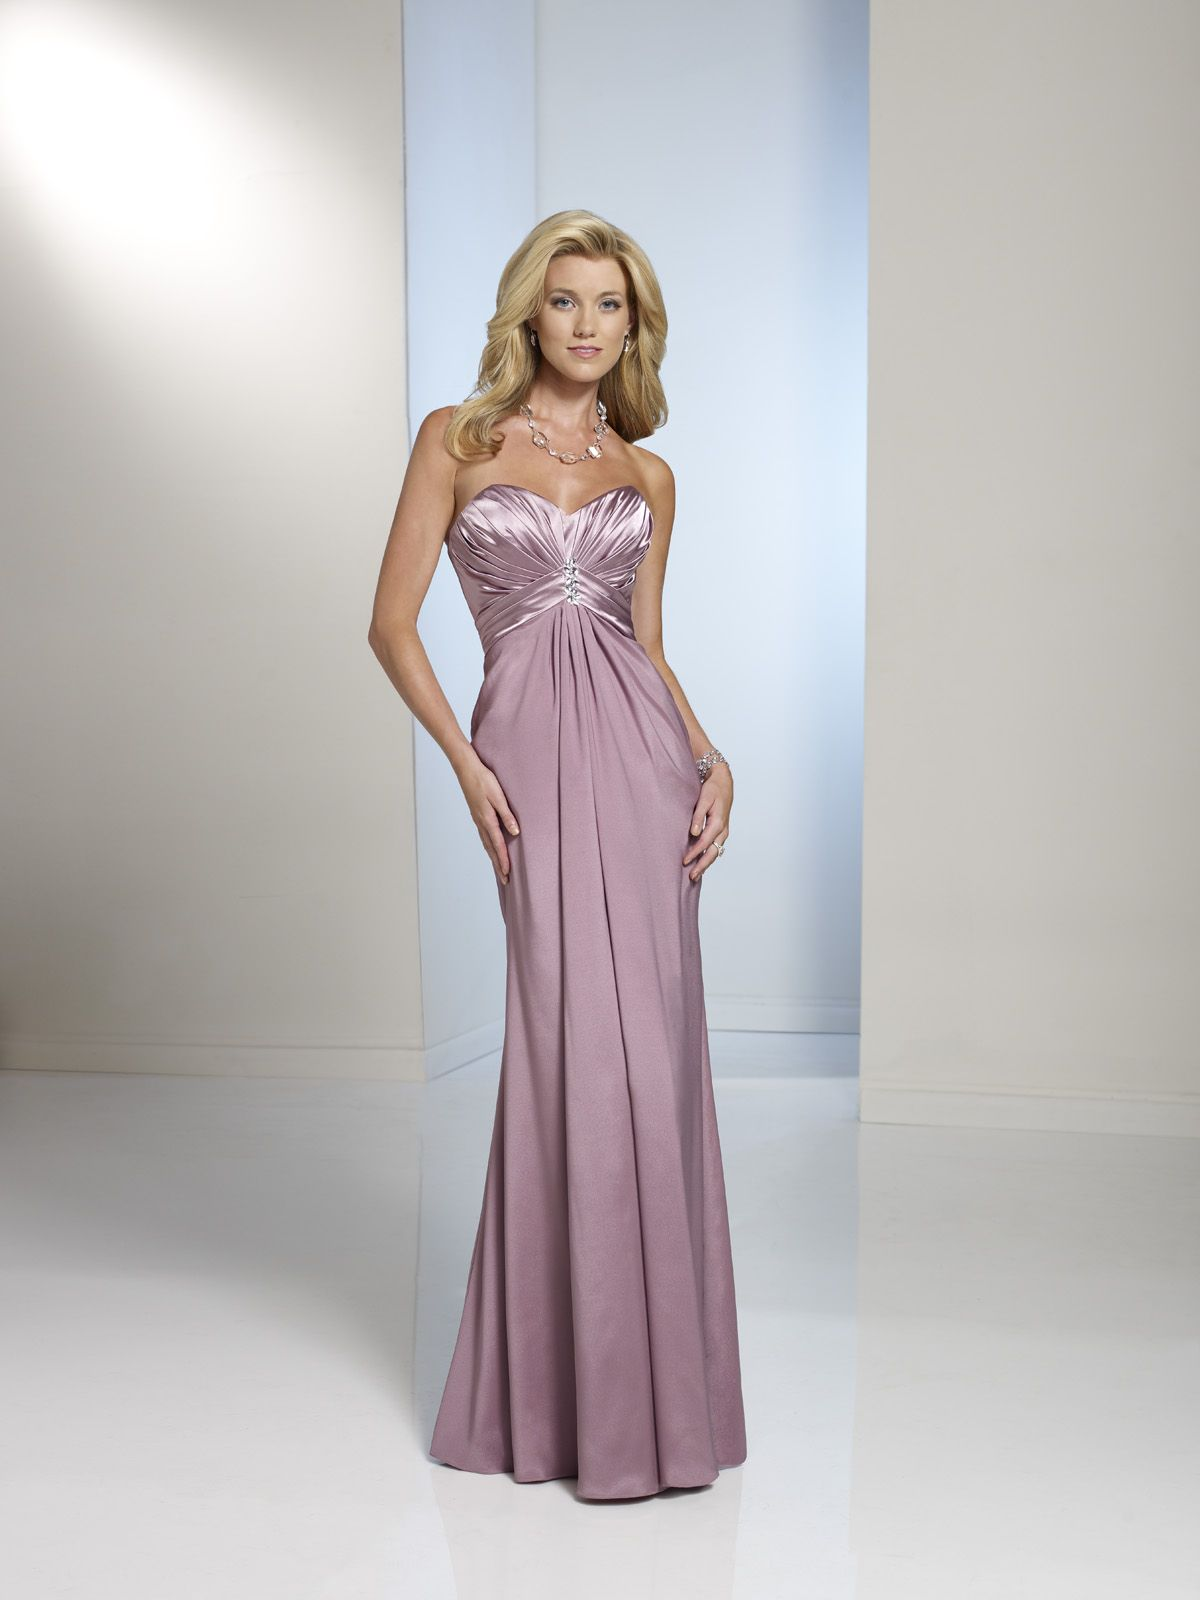 Wedding dresses with purple accents  Strapless crepe back satin gown with sweetheart neckline